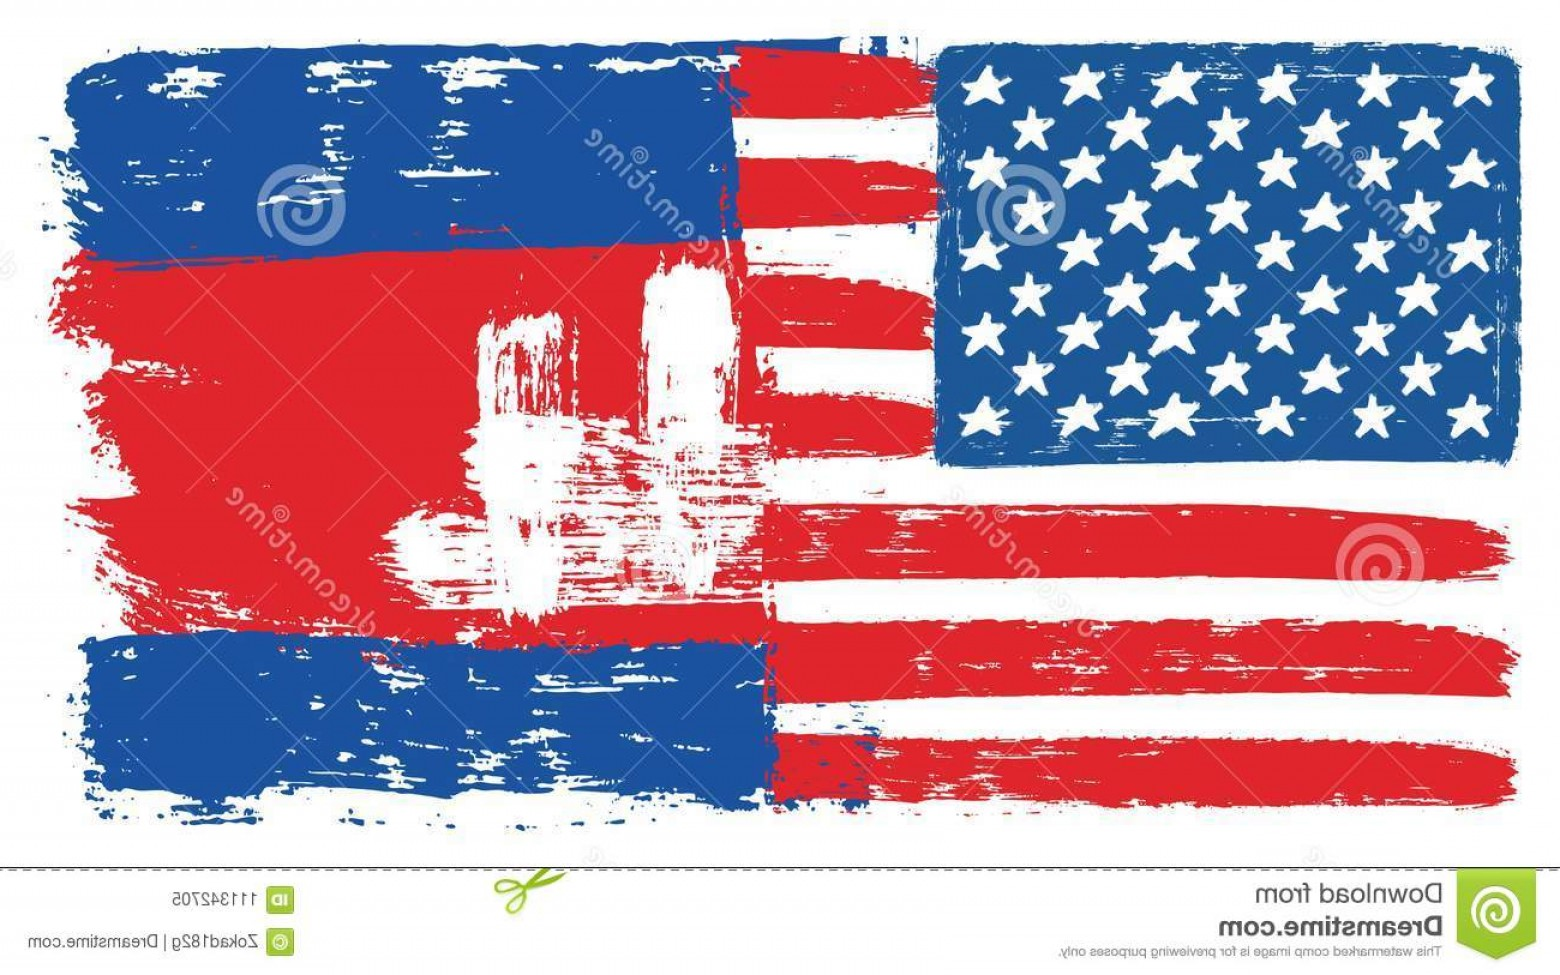 US Flag Vector Lines: United States America Flag Cambodia Vector Hand Painted Rounded Brush Image Illustration Can Be Scaled To Image